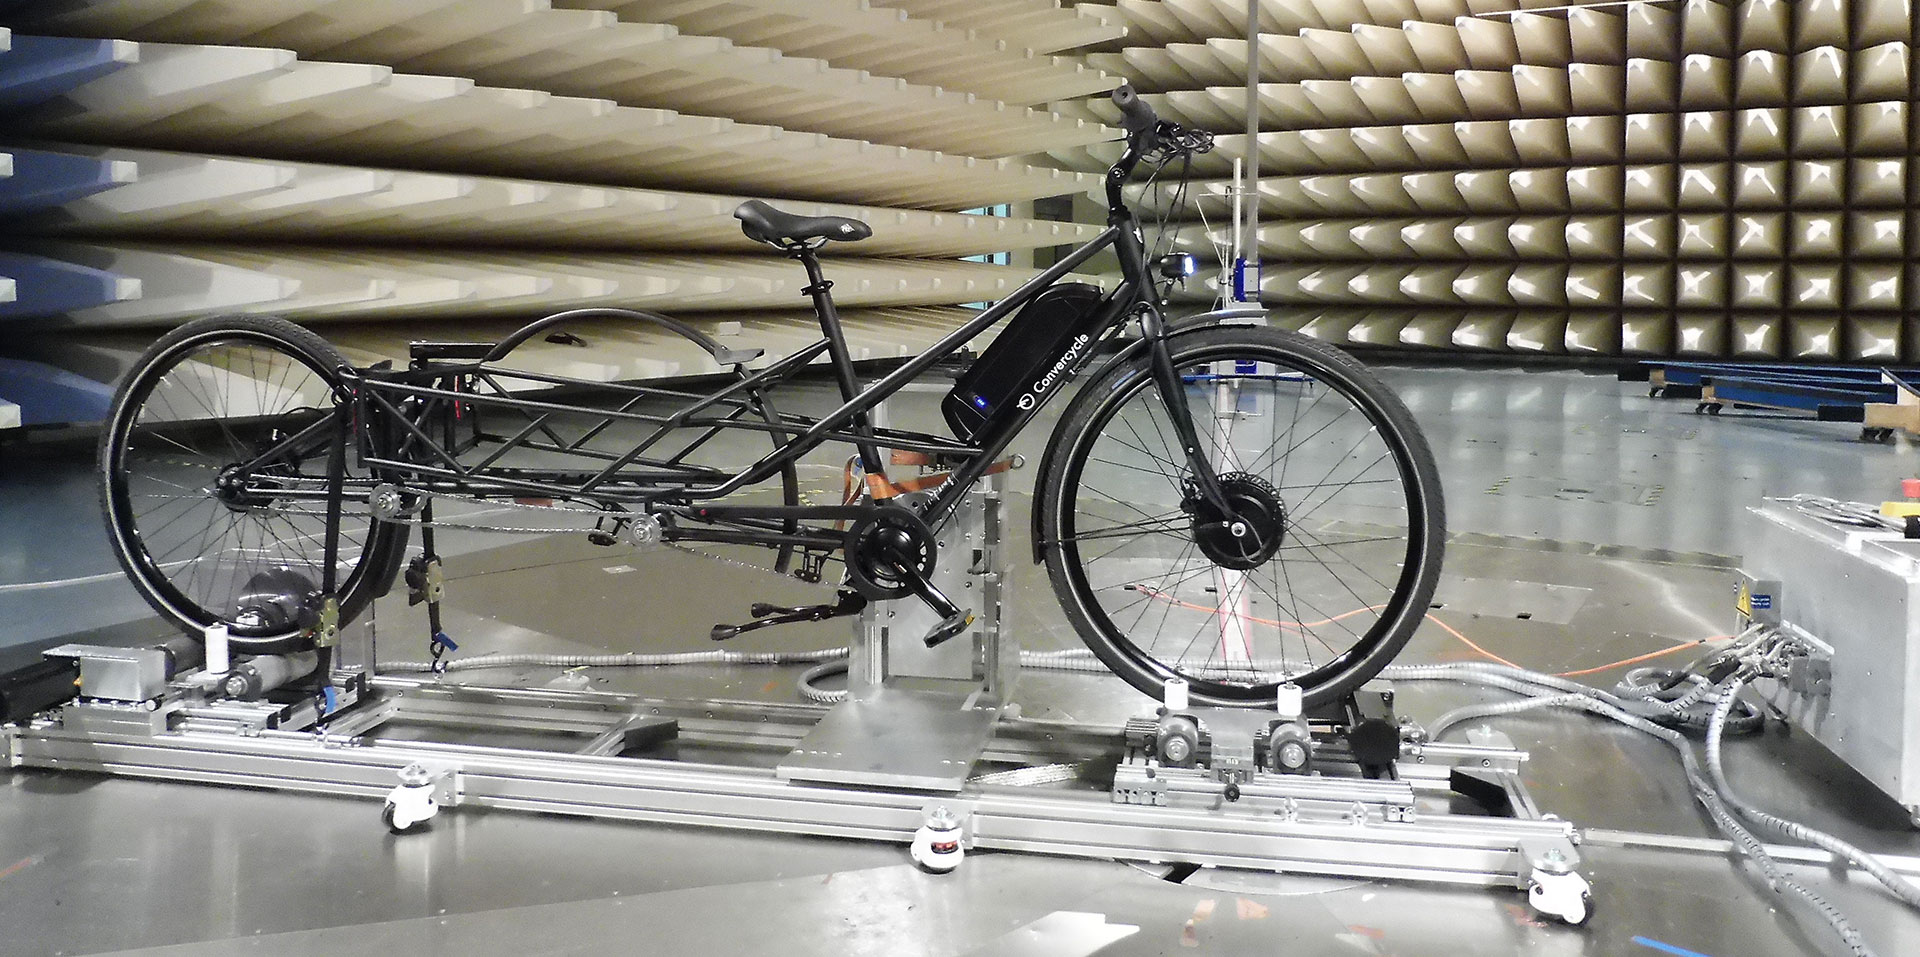 Our bikes have been tested according to the EN ISO 4210 standard for bicycles, the DIN 79010 standard for cargo bikes and the (EPACs) DIN EN 15194 standard for electric motor assisted bikes.